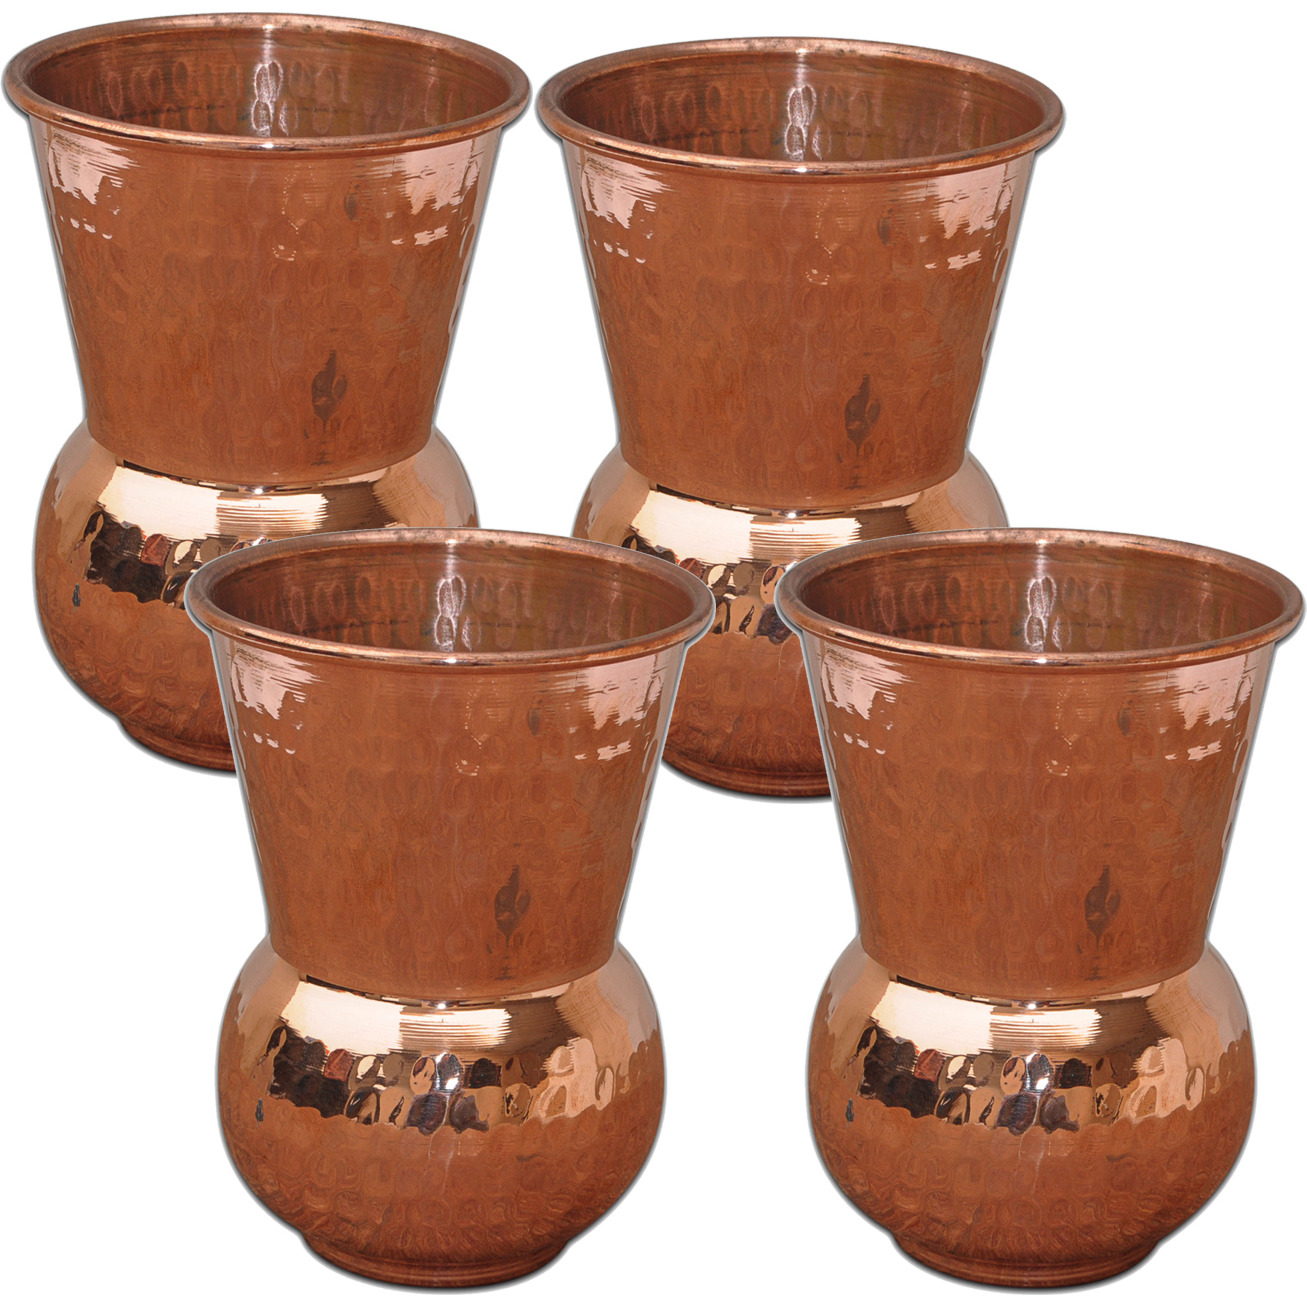 Set of 4 - Prisha India Craft B. Copper Muglai Matka Glass Hammered Style Drinkware Tumbler Handmade Copper Cups - Traveller's Copper Mug for Ayurveda Benefits